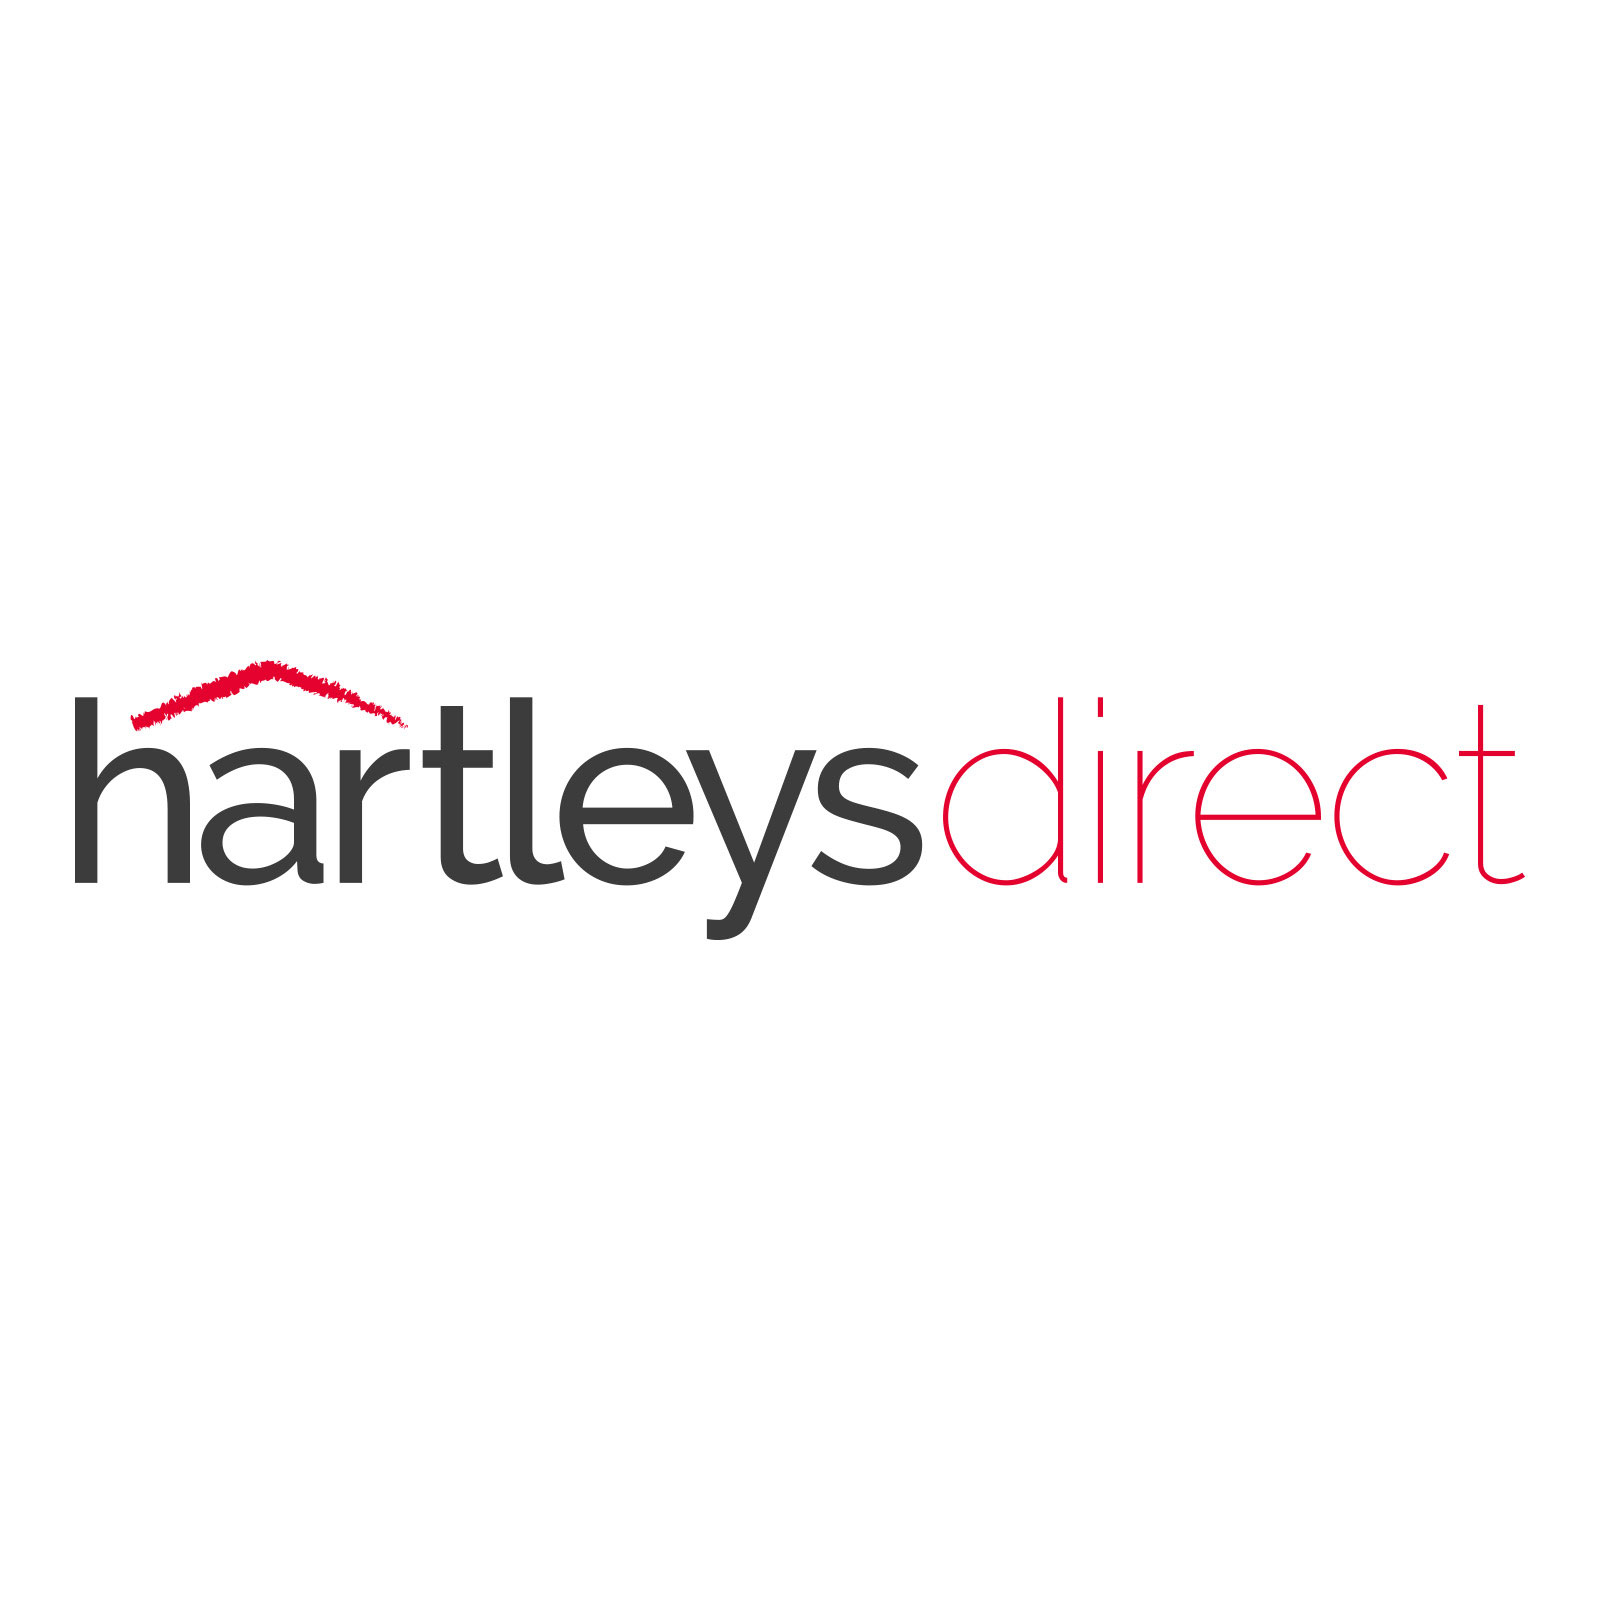 Hartleys-X-Large-100cm-Glass-Monitor-Riser-Stand-on-White-Background.jpg